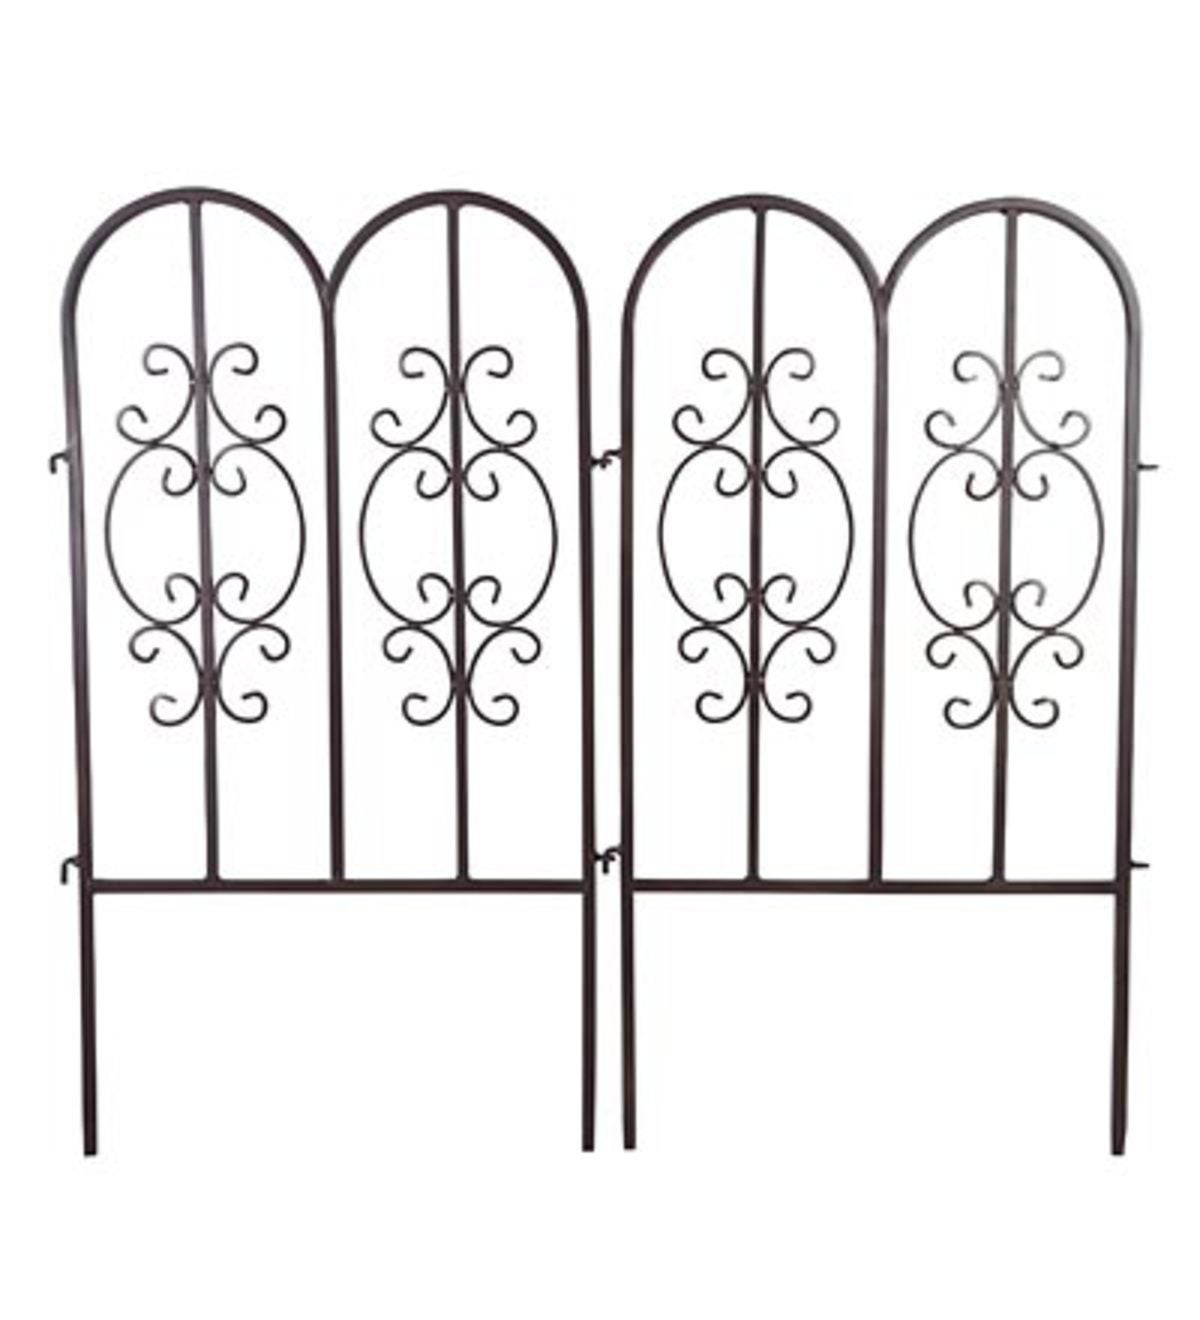 Montebello Iron Garden Fencing, Set of 2 - Gunmetal